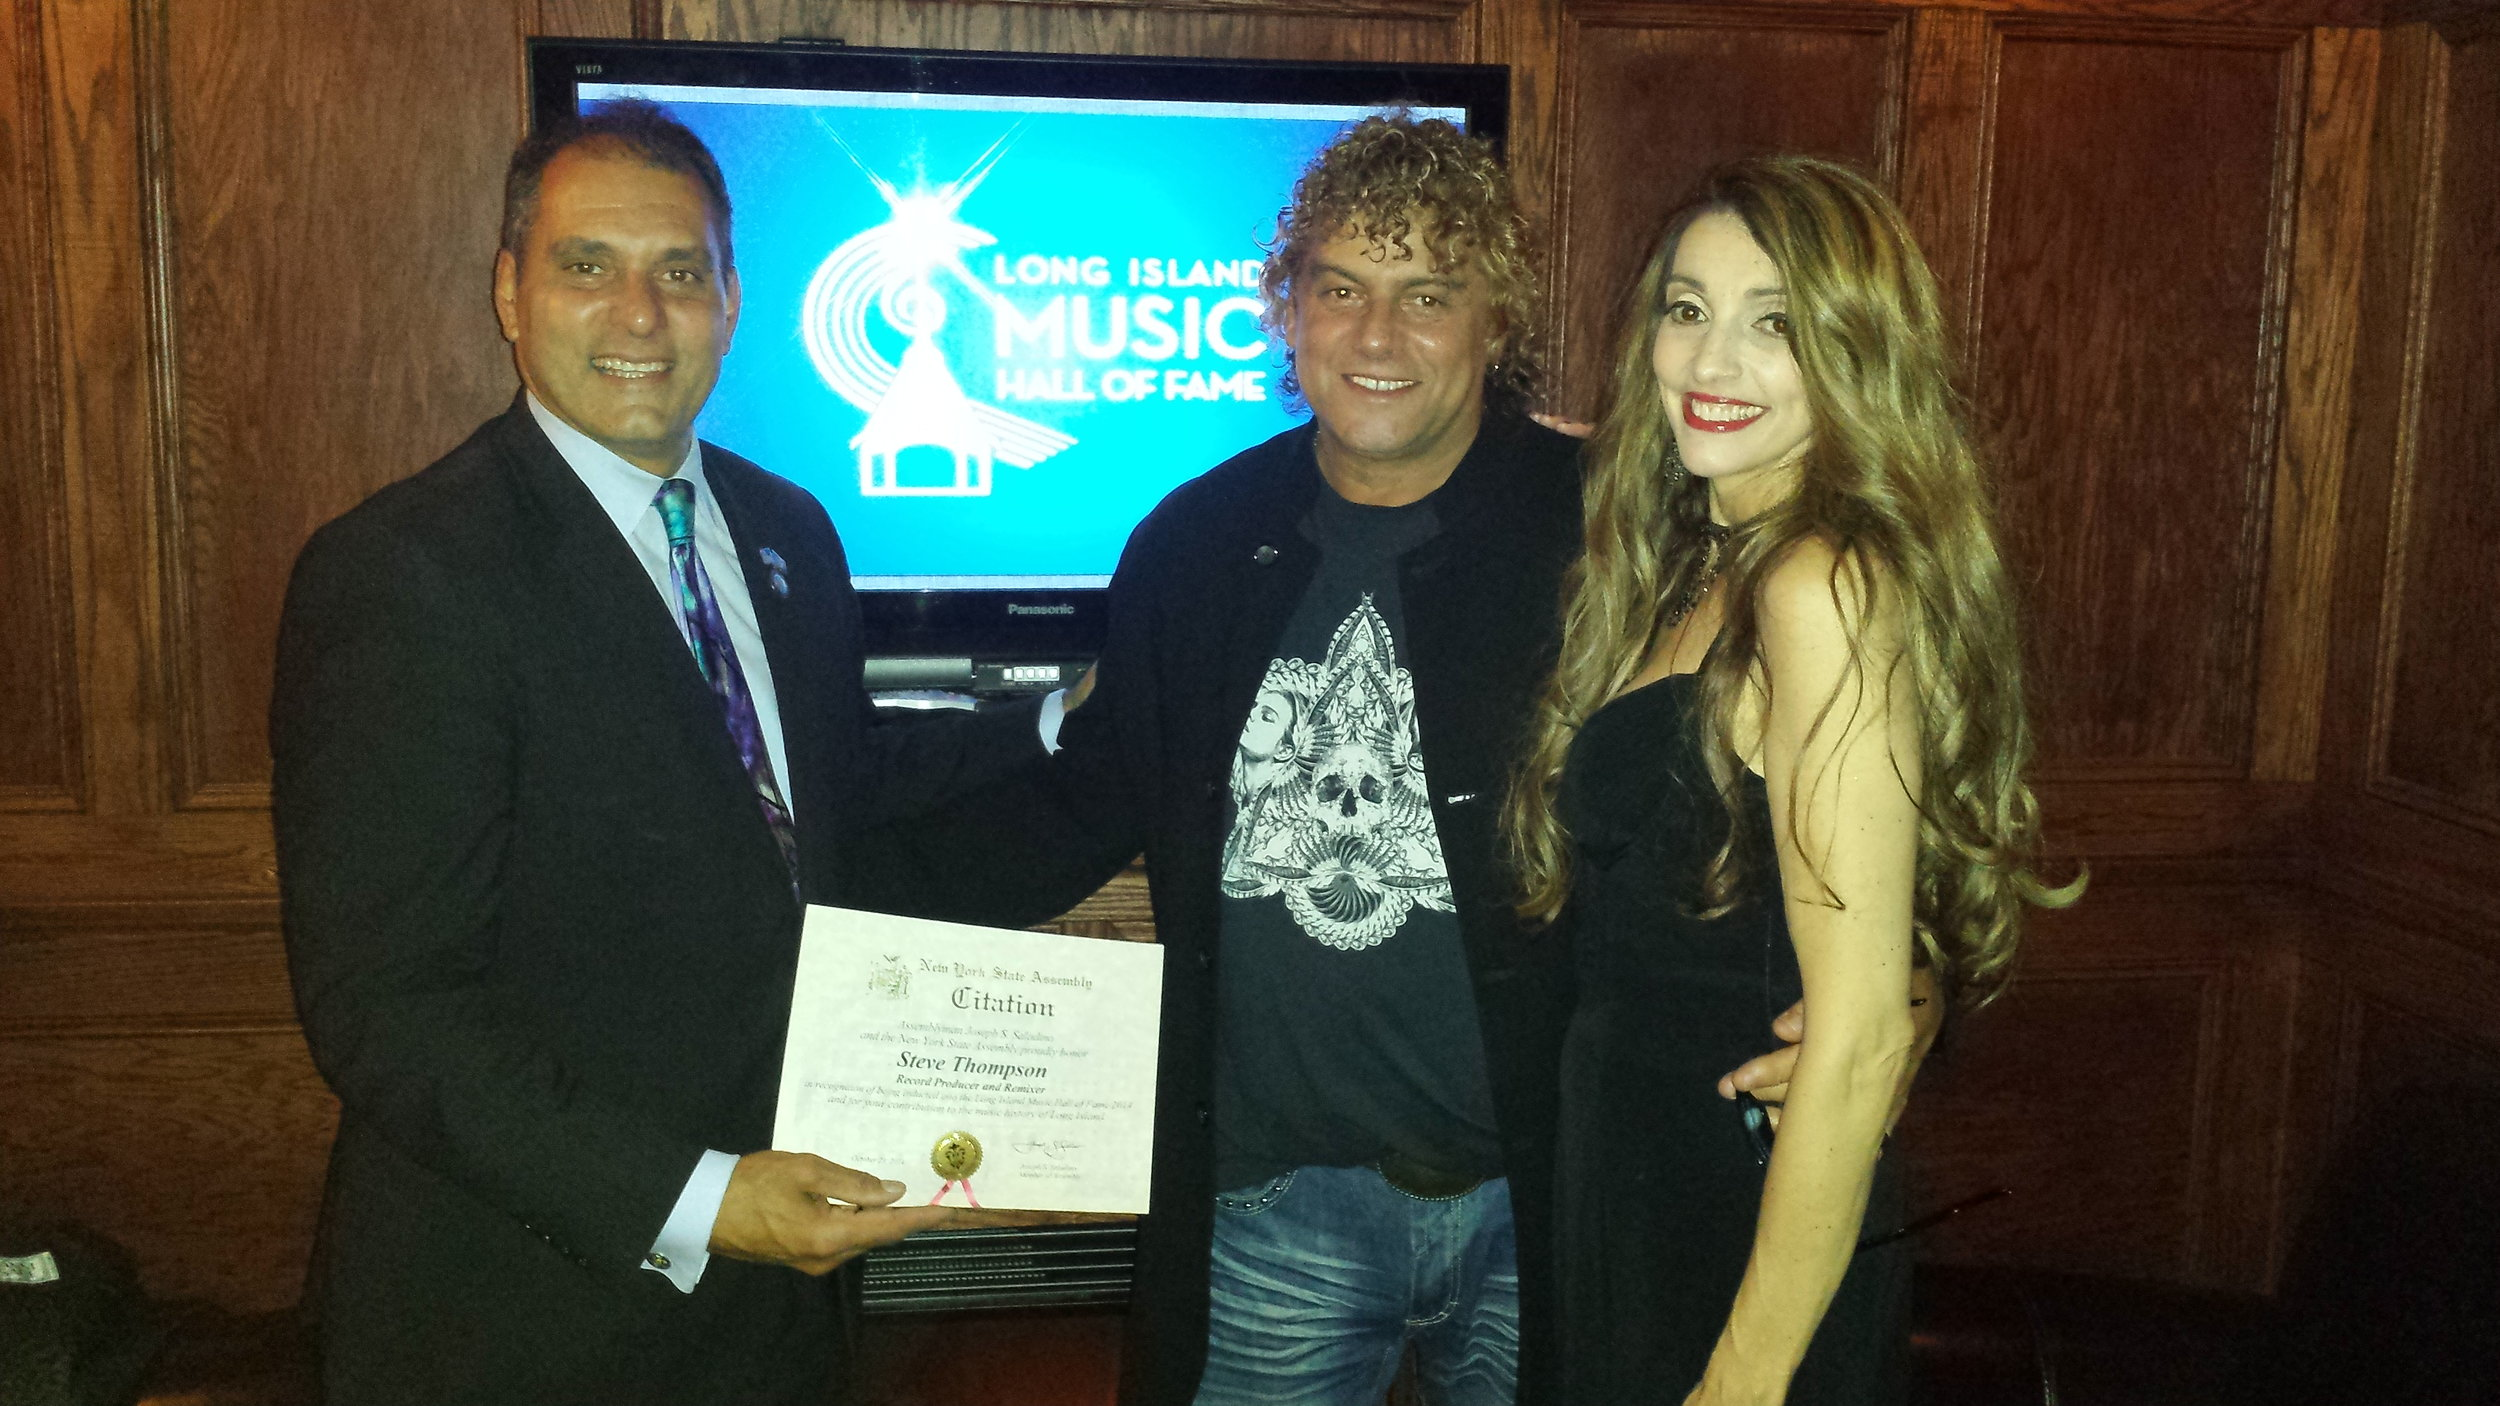 Steve (with wife Joanne) receiving the New York State Assembly Honor For Contributions in the Music industry with Assemblyman Joseph Saladino -Paramount, NY.